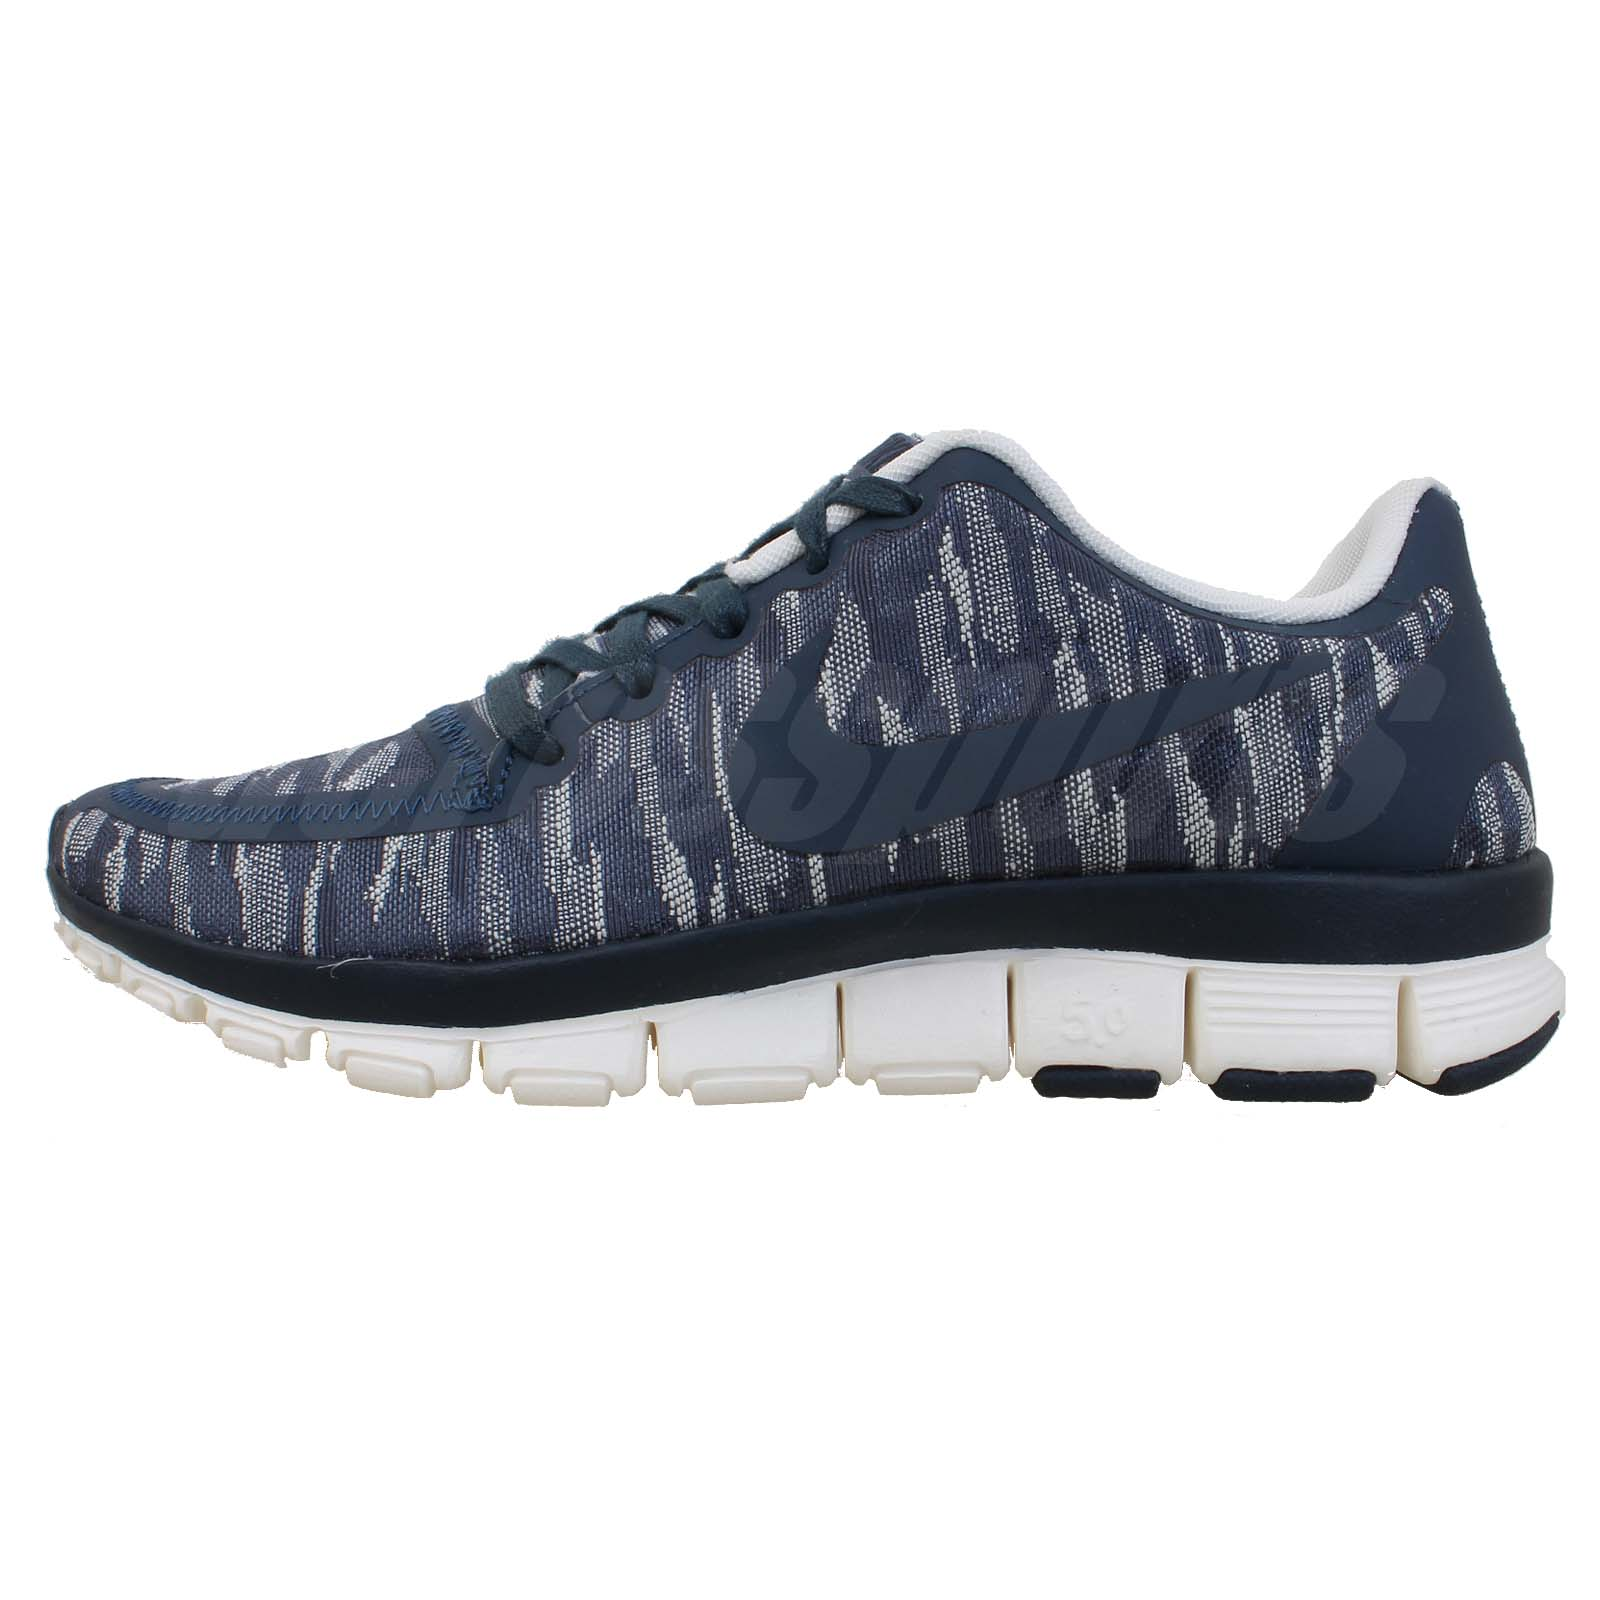 Nike Wmns Free 5.0 V4 PRM Premium Navy Camo Womens Running Shoes